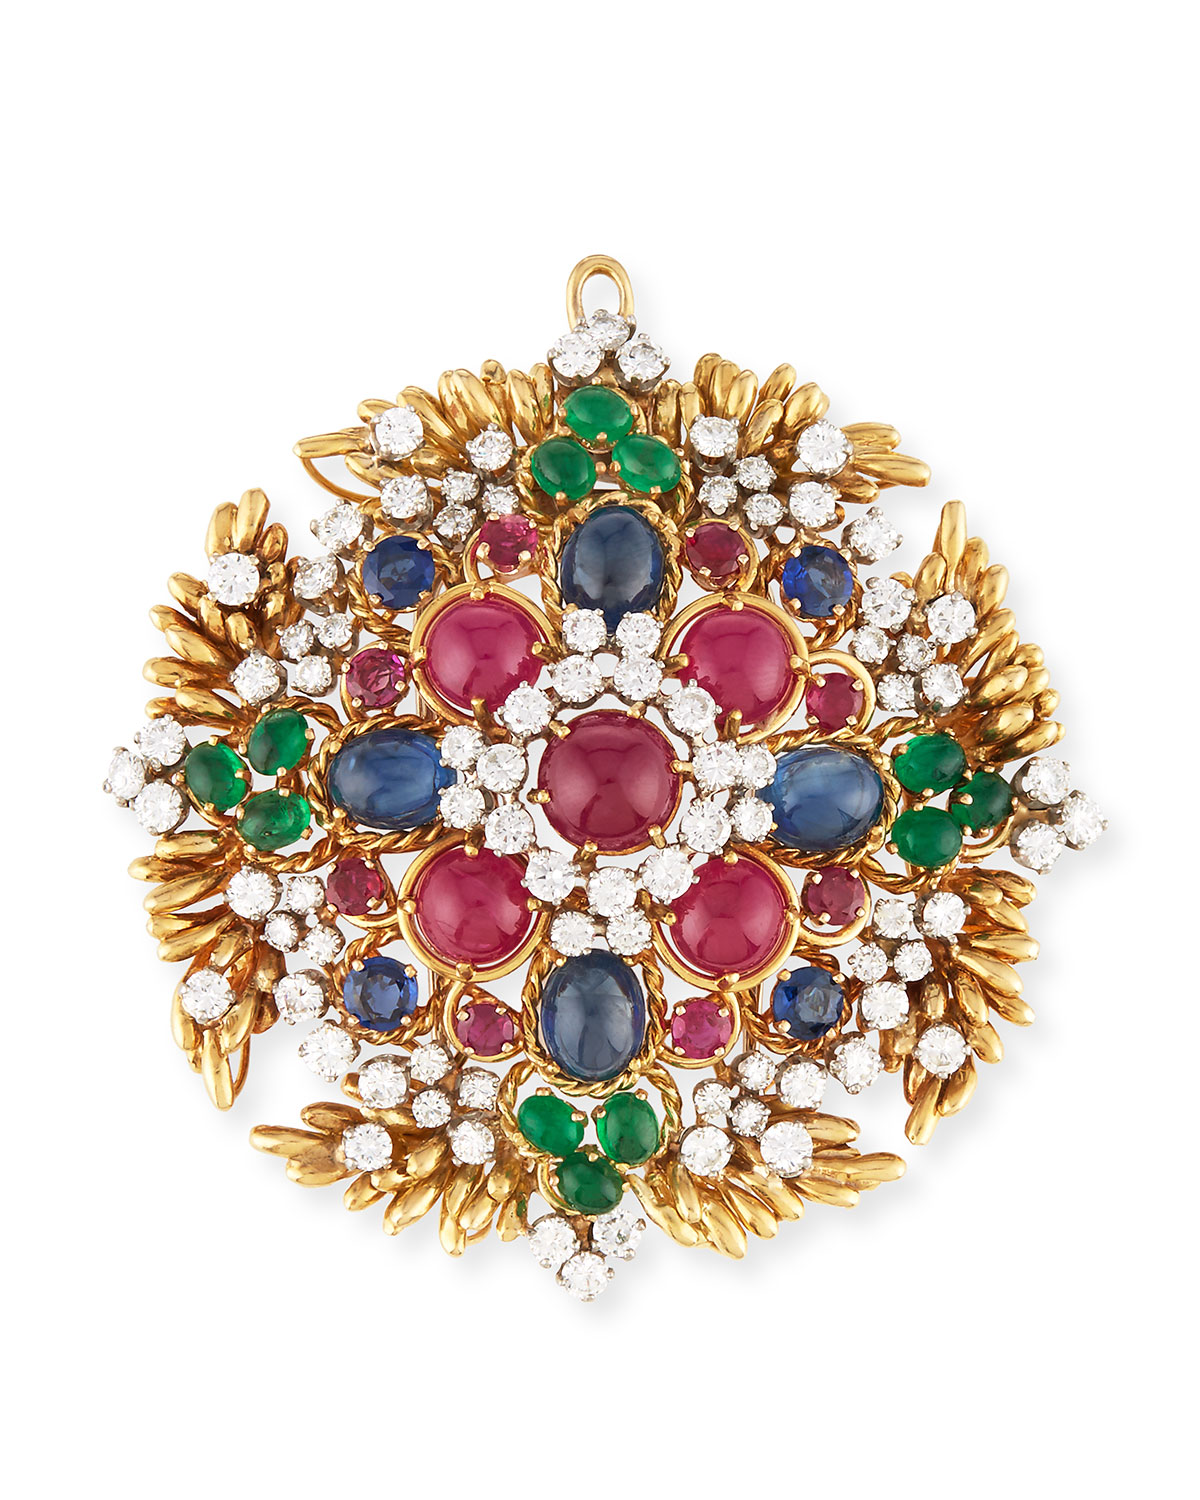 HAYS WORTHINGTON 18K Gold Ruby & Sapphire Cabochon Pendant/Pin With Diamonds in Multi